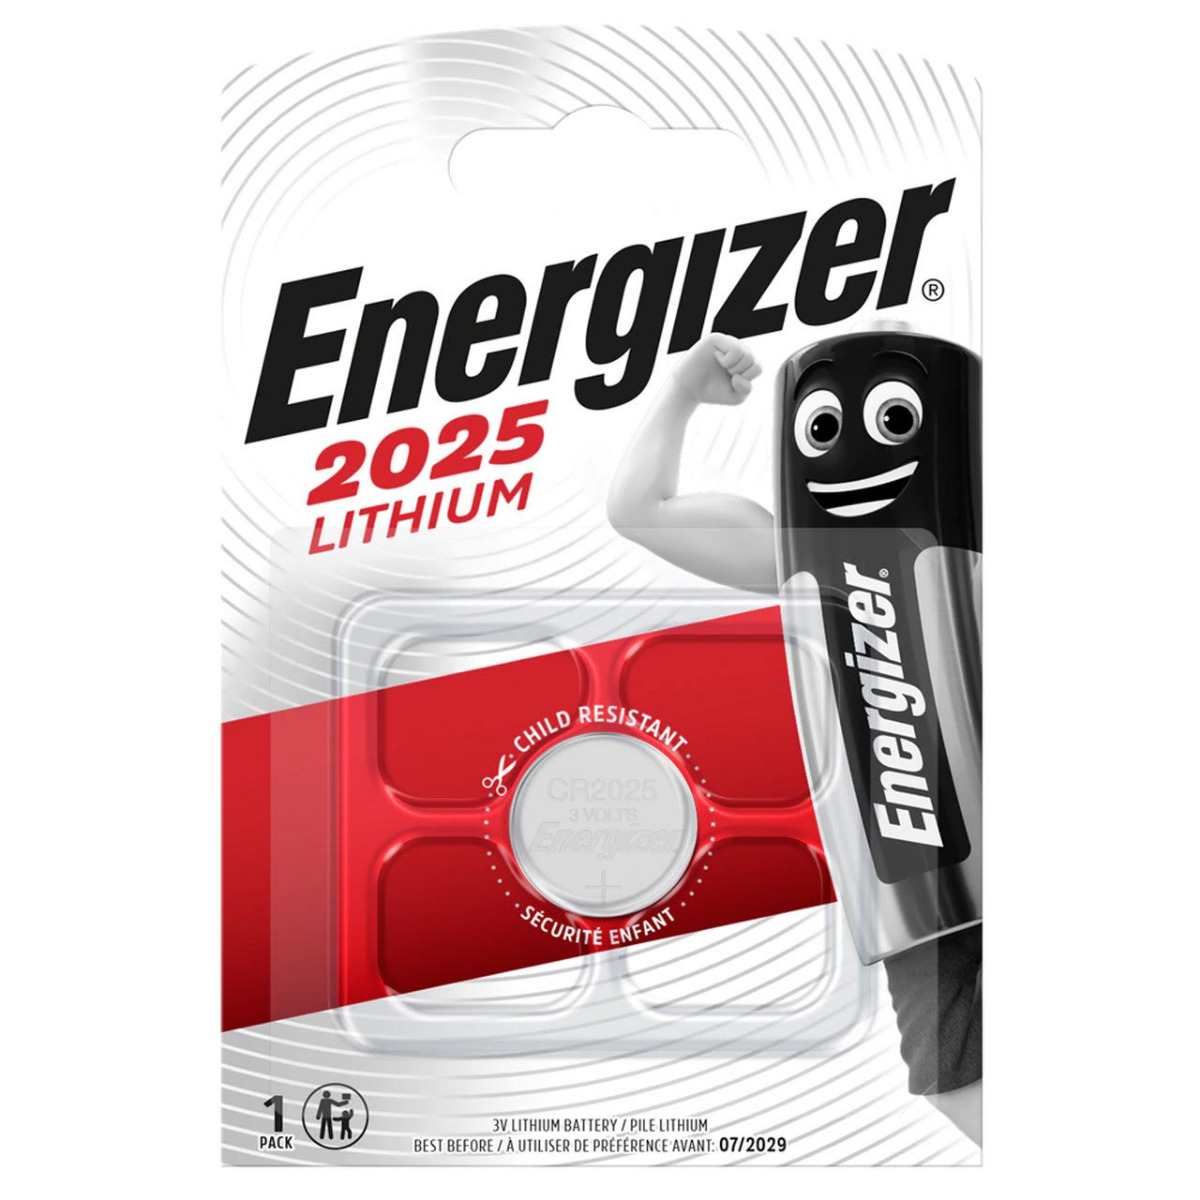 Energizer CR2025 Lithium Coin Cell Battery   1 Pack